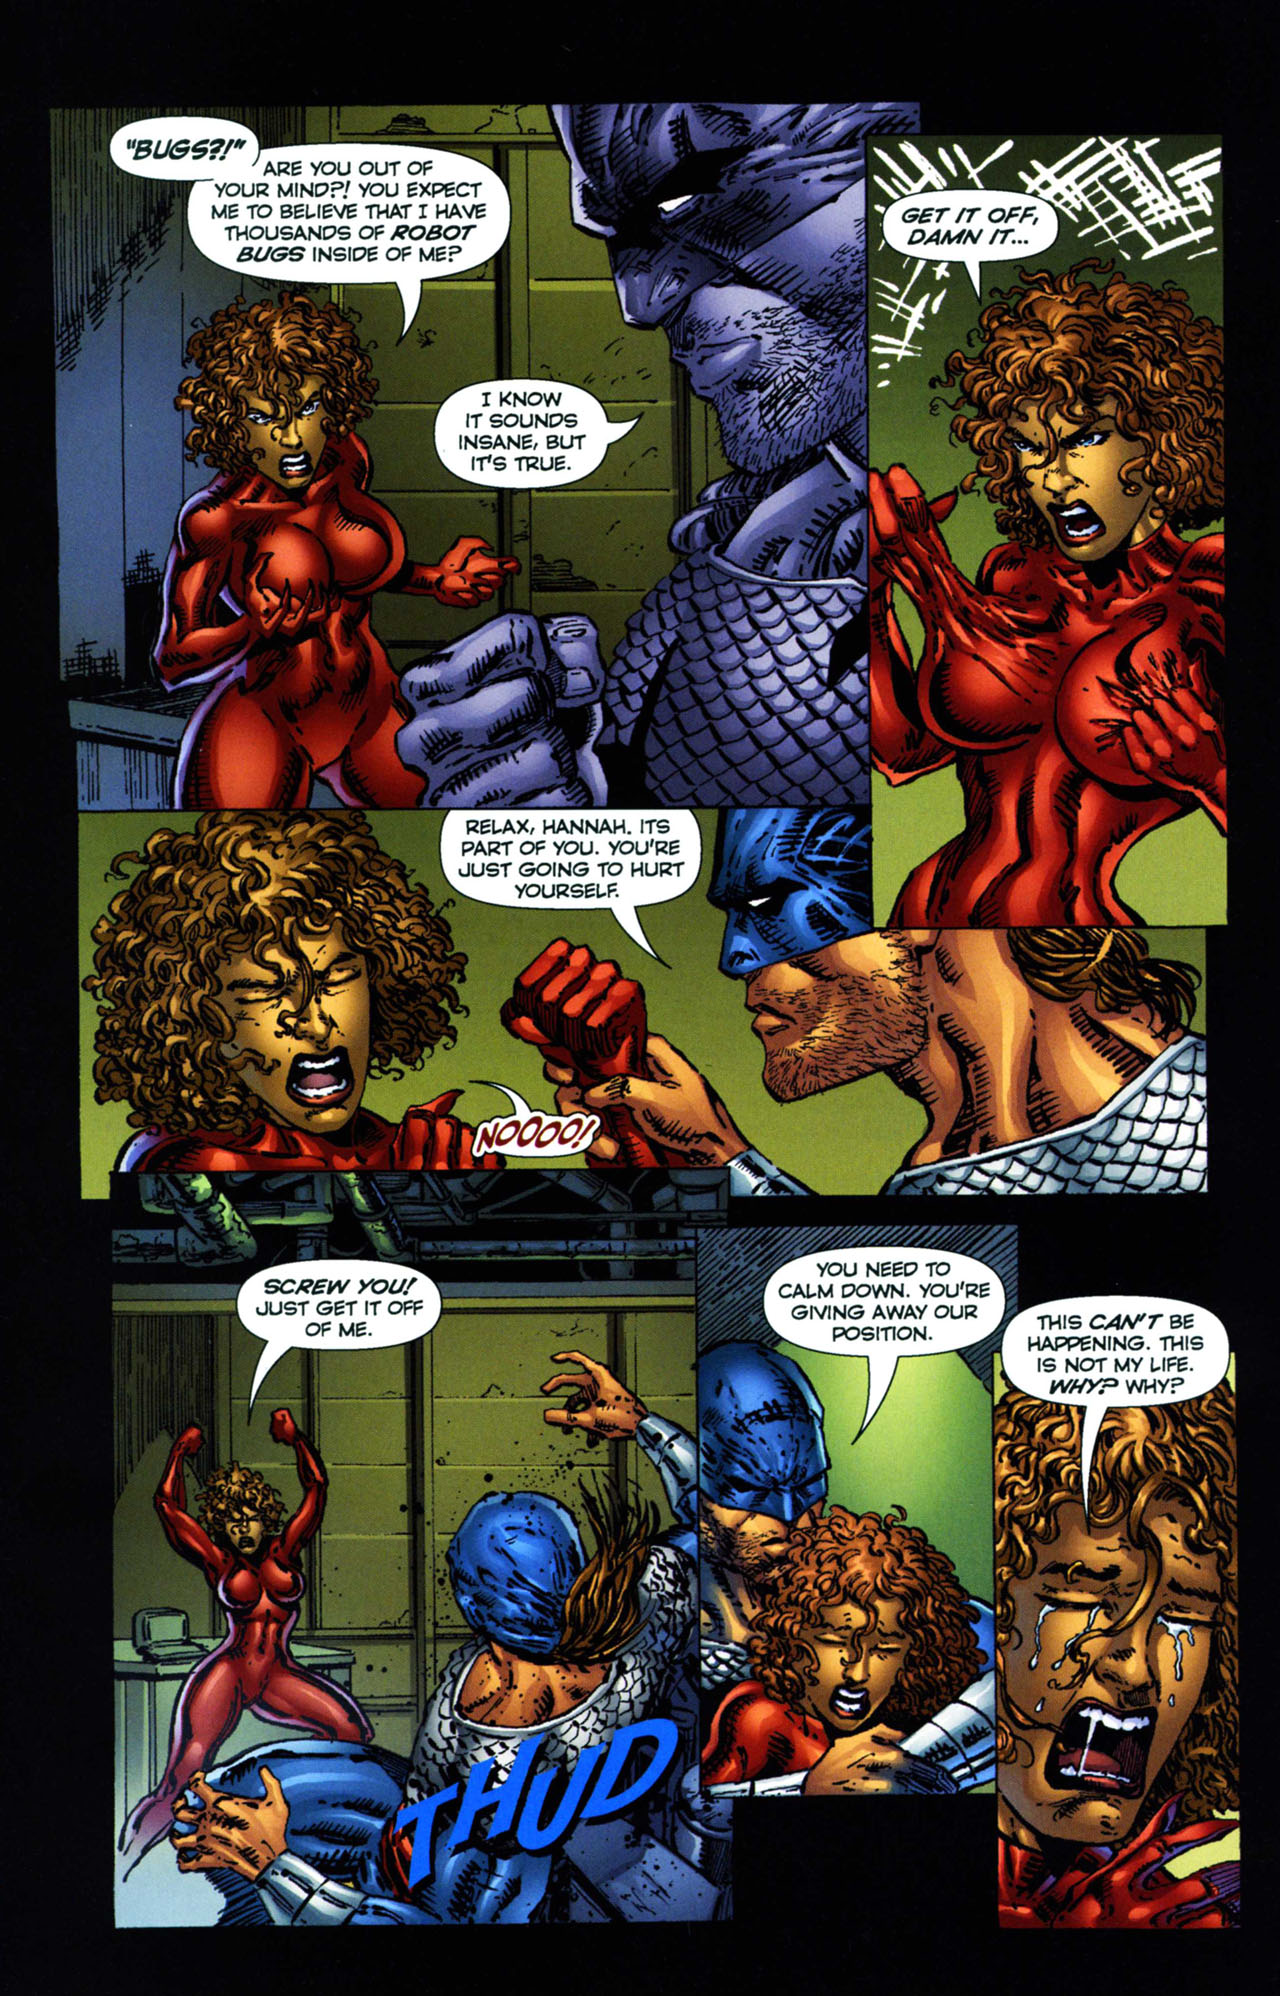 Read online Ant comic -  Issue #11 - 10